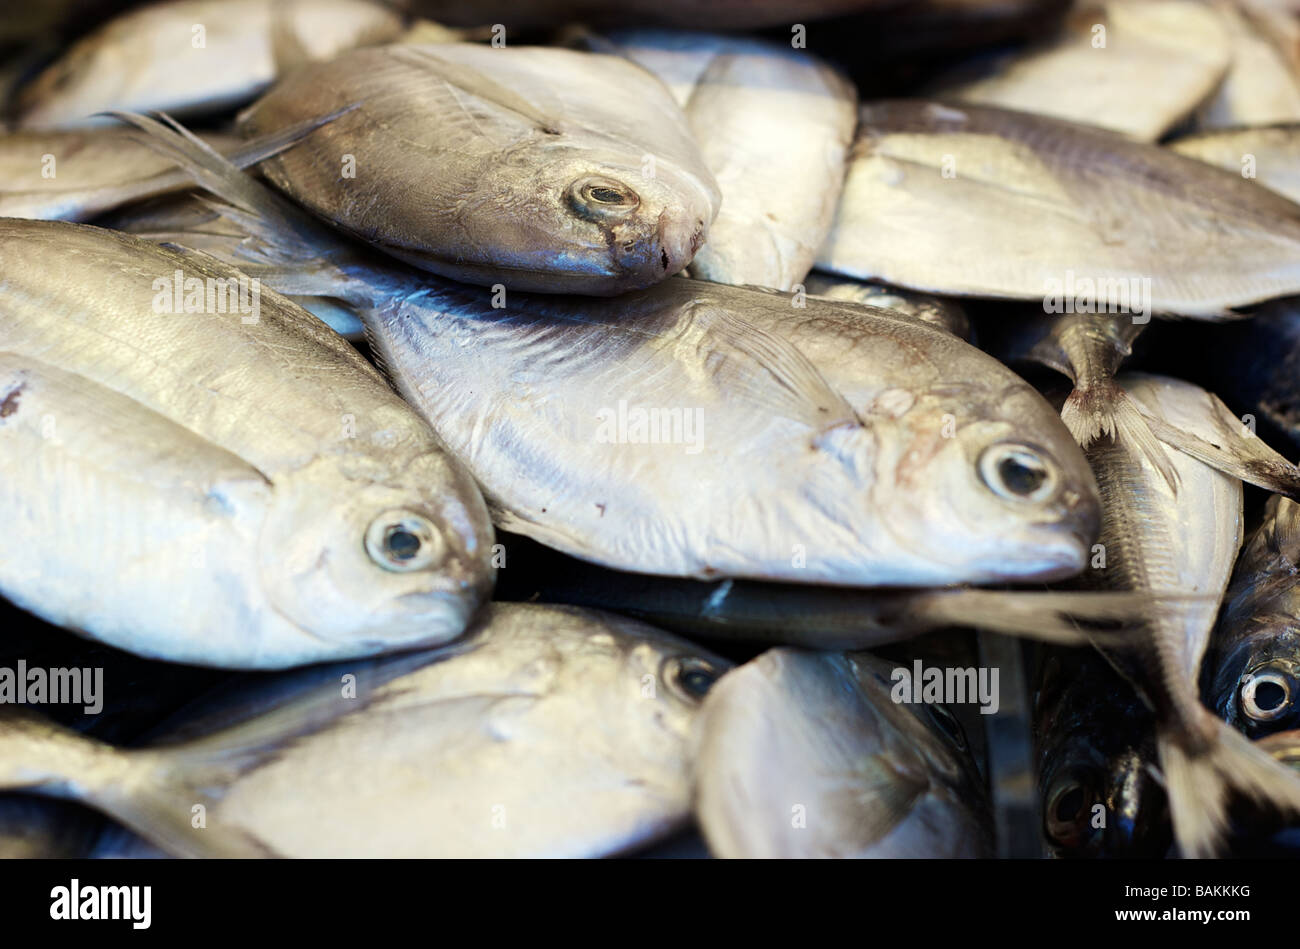 Closeup of Fresh Pompano Fish on Display at a Seafood Market - Stock Image